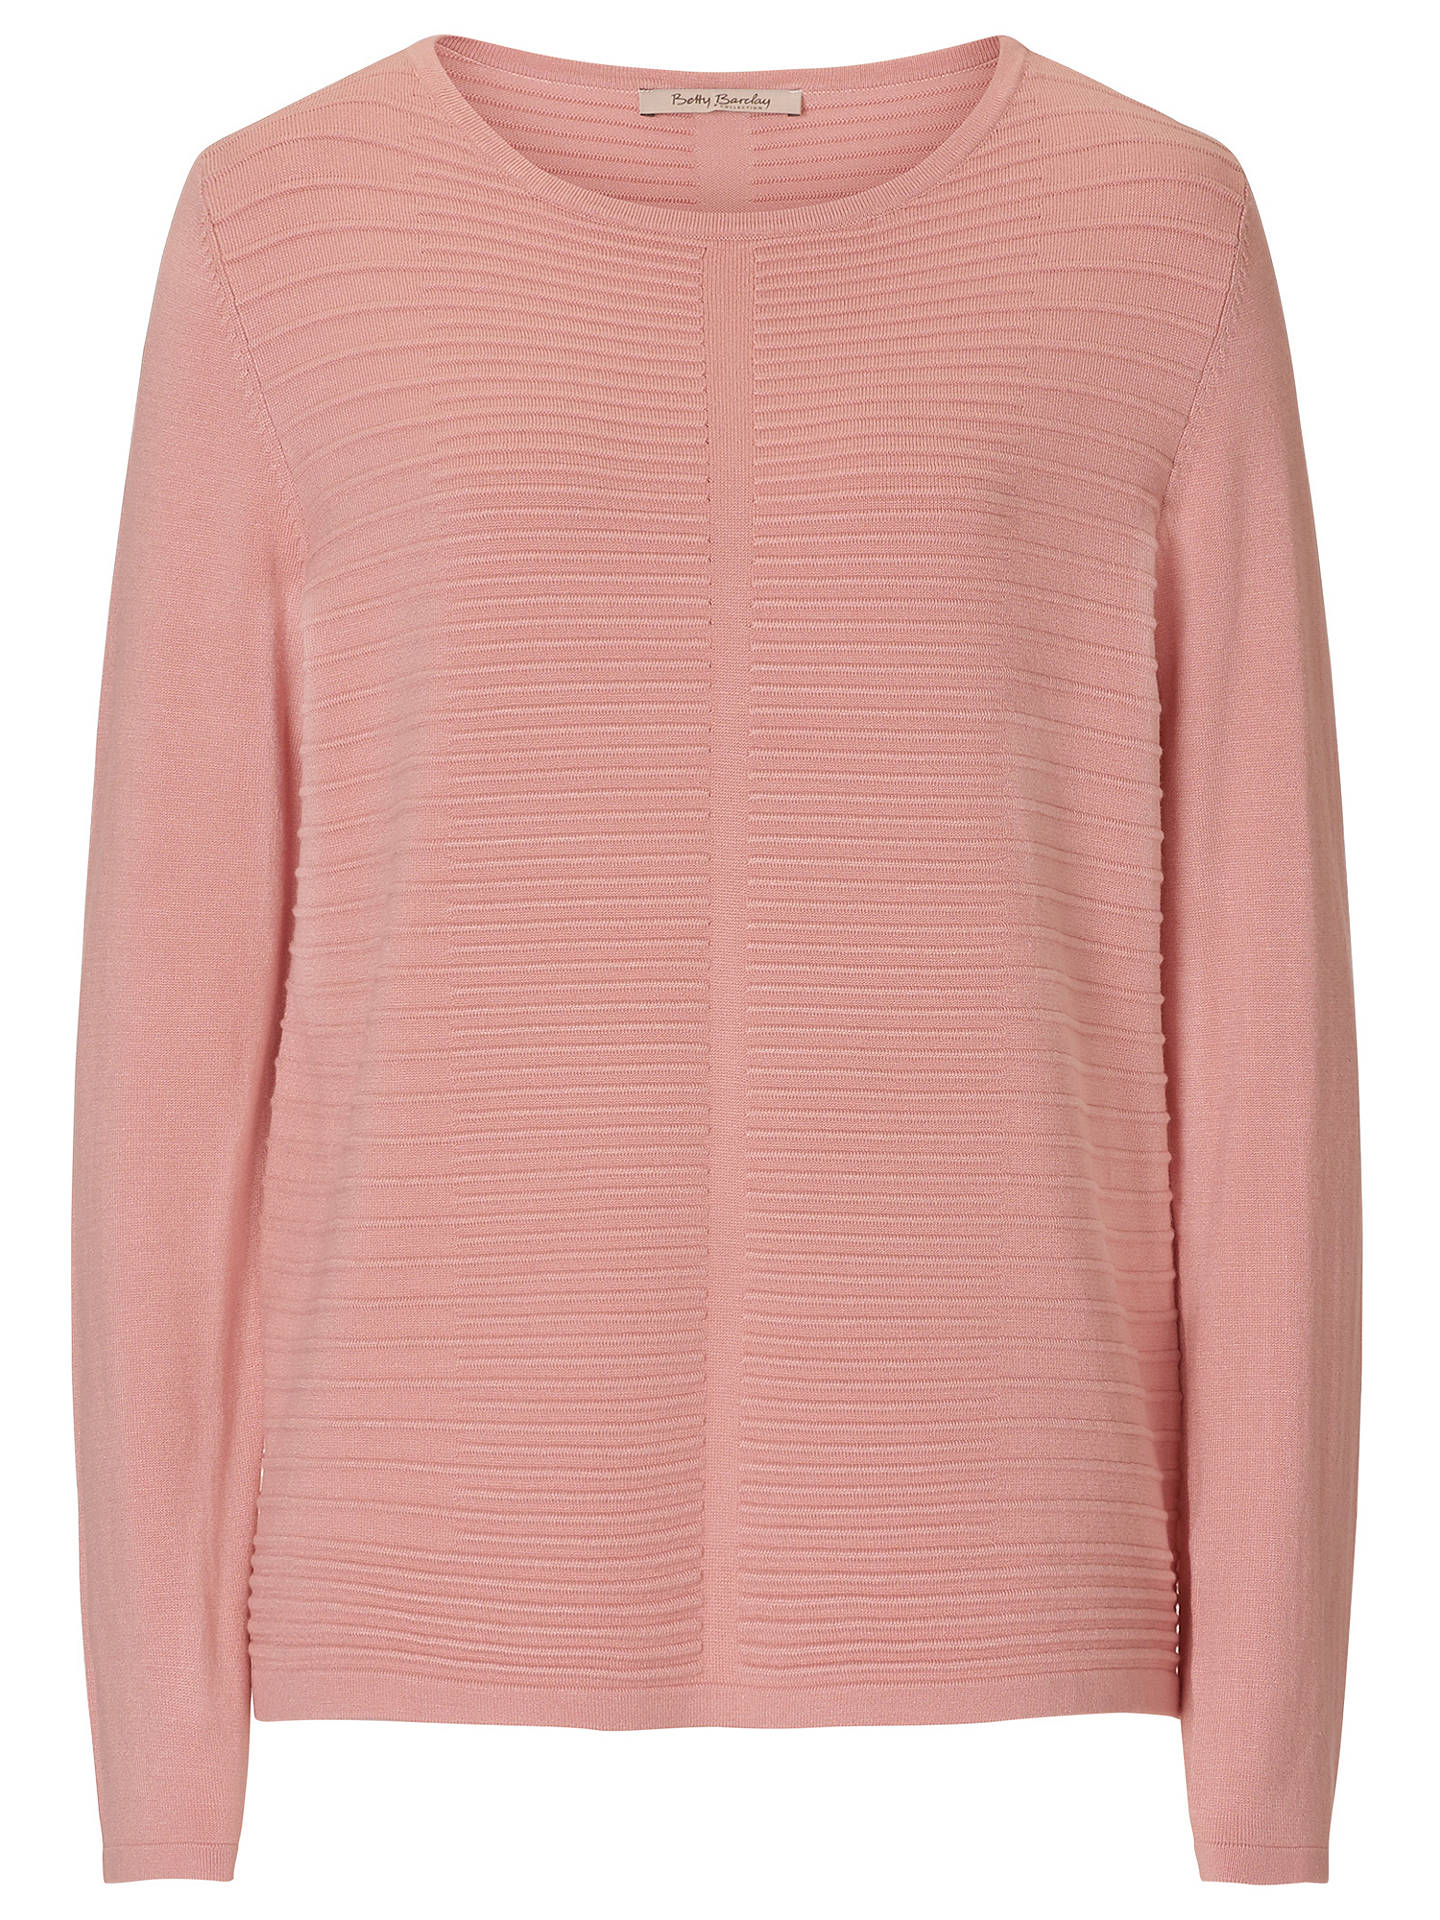 BuyBetty Barclay Ribbed Jumper, Powder Rose, 10 Online at johnlewis.com